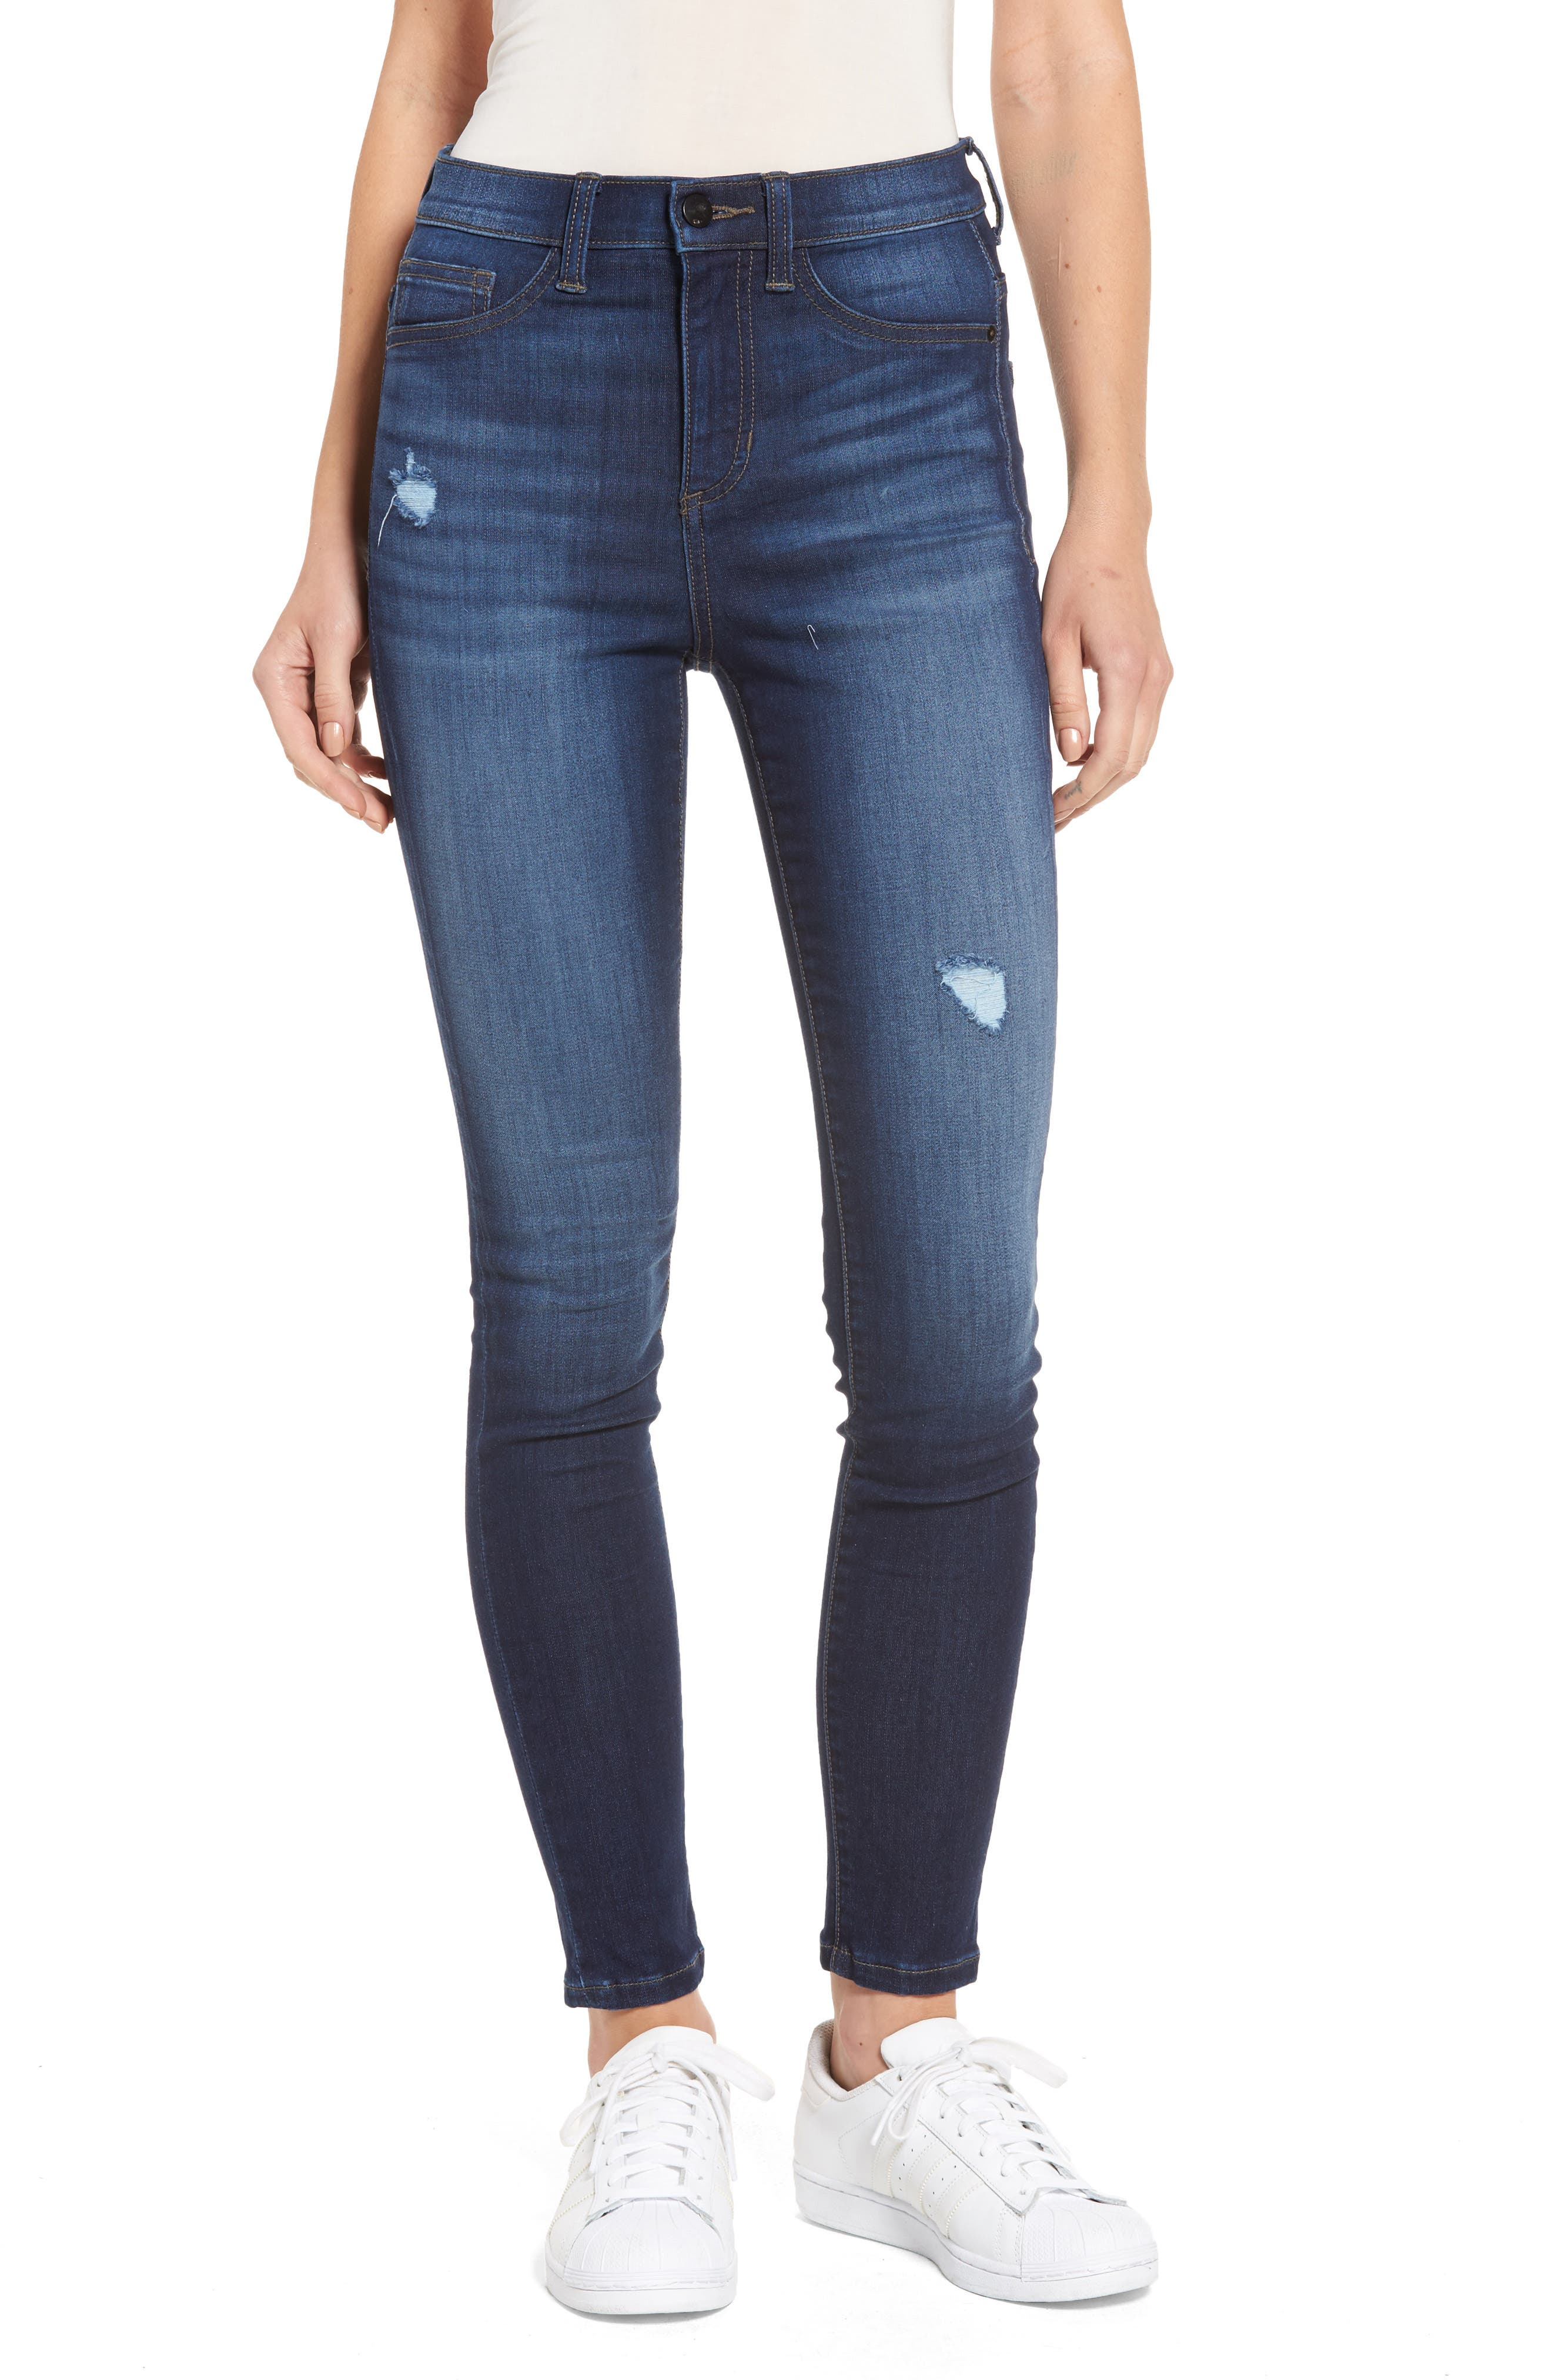 SP Black High Waist Stretch Skinny Jeans